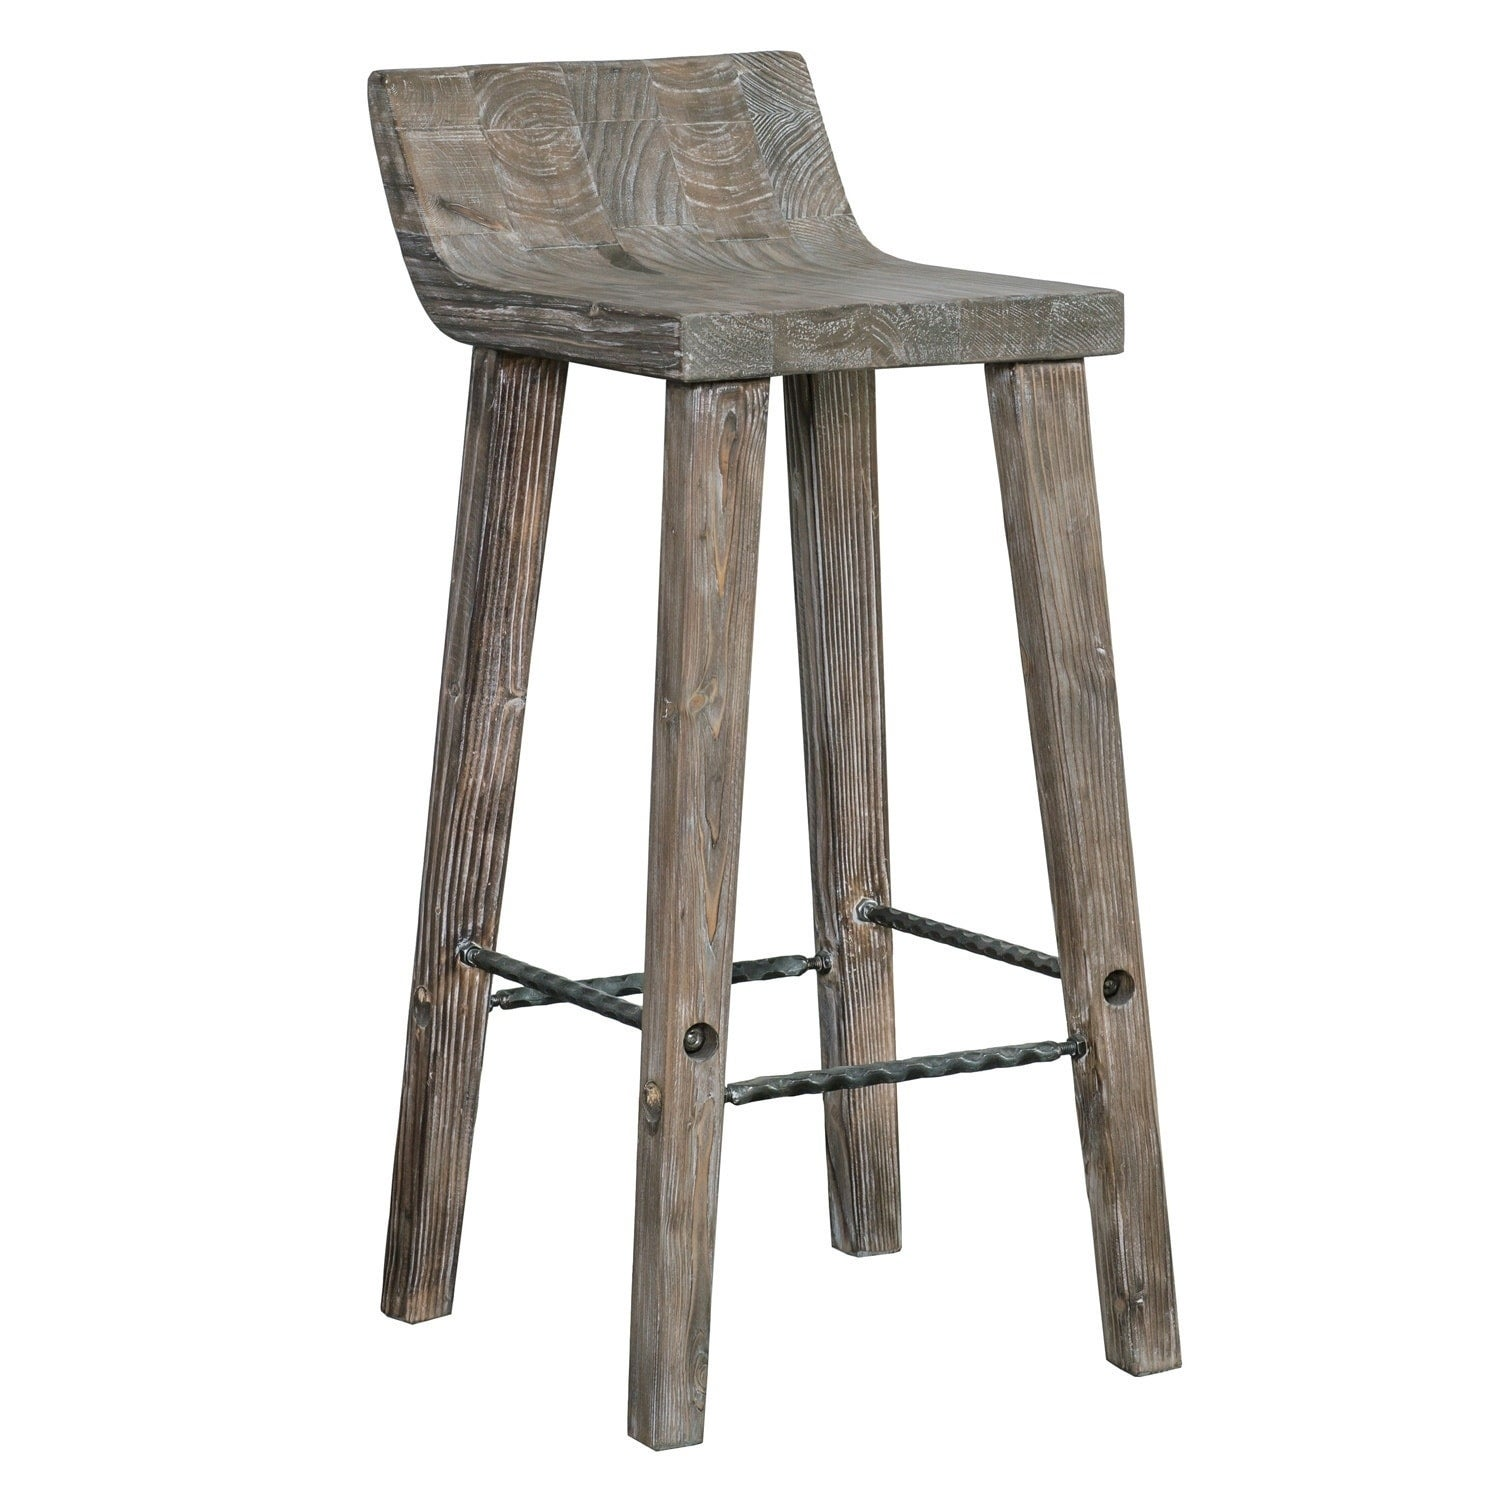 The Gray Barn Gold Creek Natural Wood Counter Stool